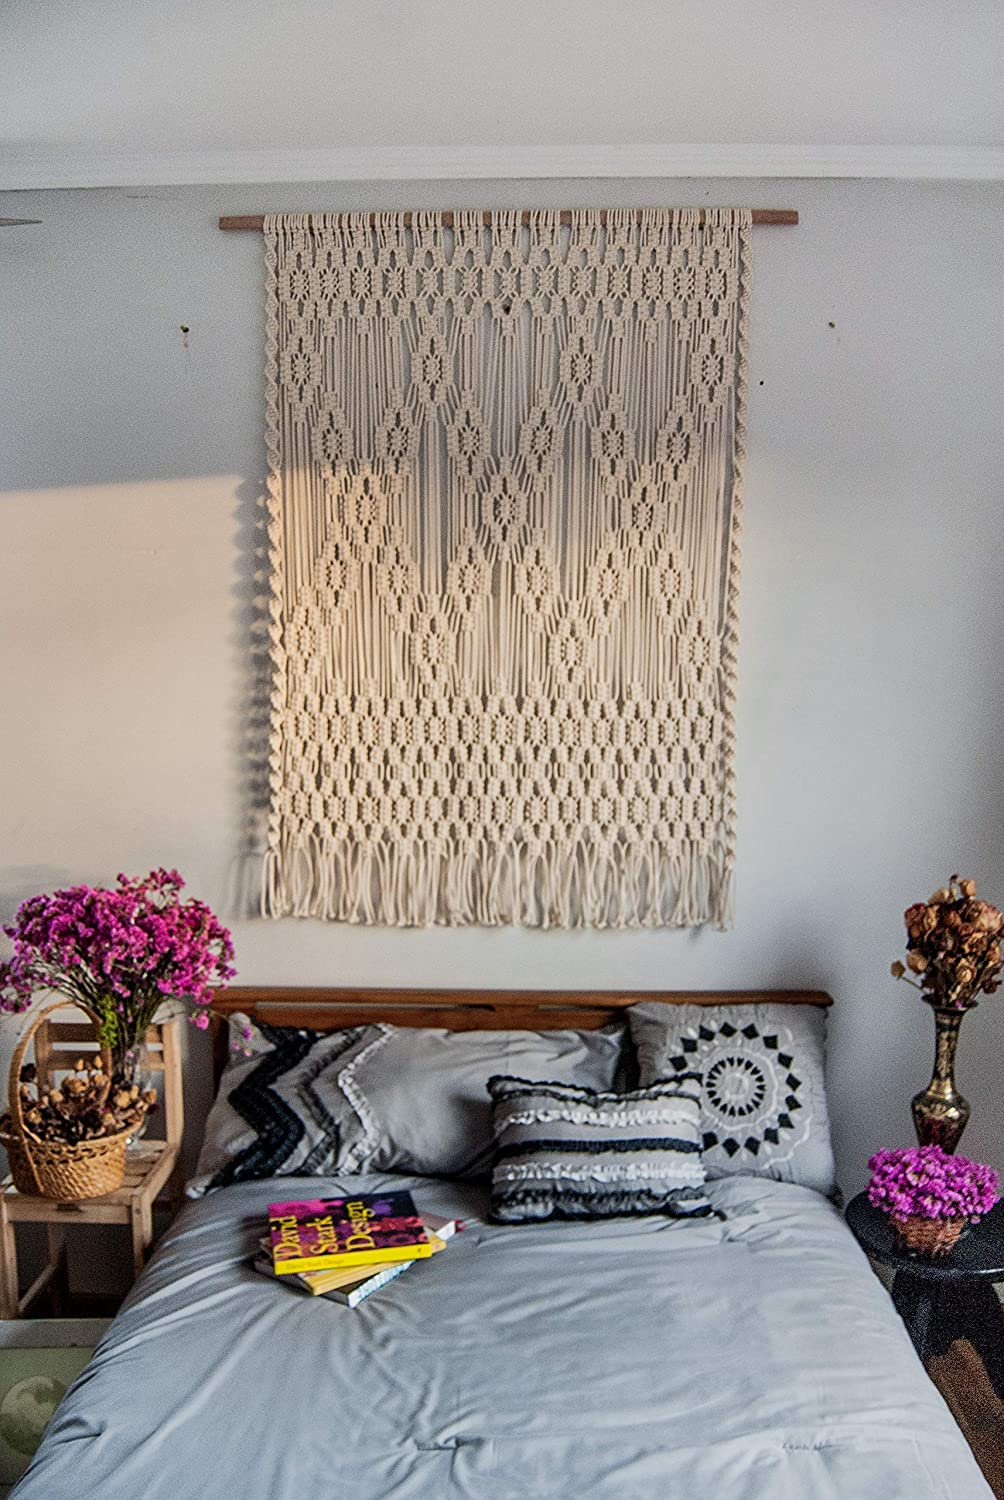 Amazon Com Wall Art For Bedroom Macrame Wall Hanging Large Wall Decoration Above Bed Wall Decor Art Work For Home Walls By The Woven Dream Factory Handmade